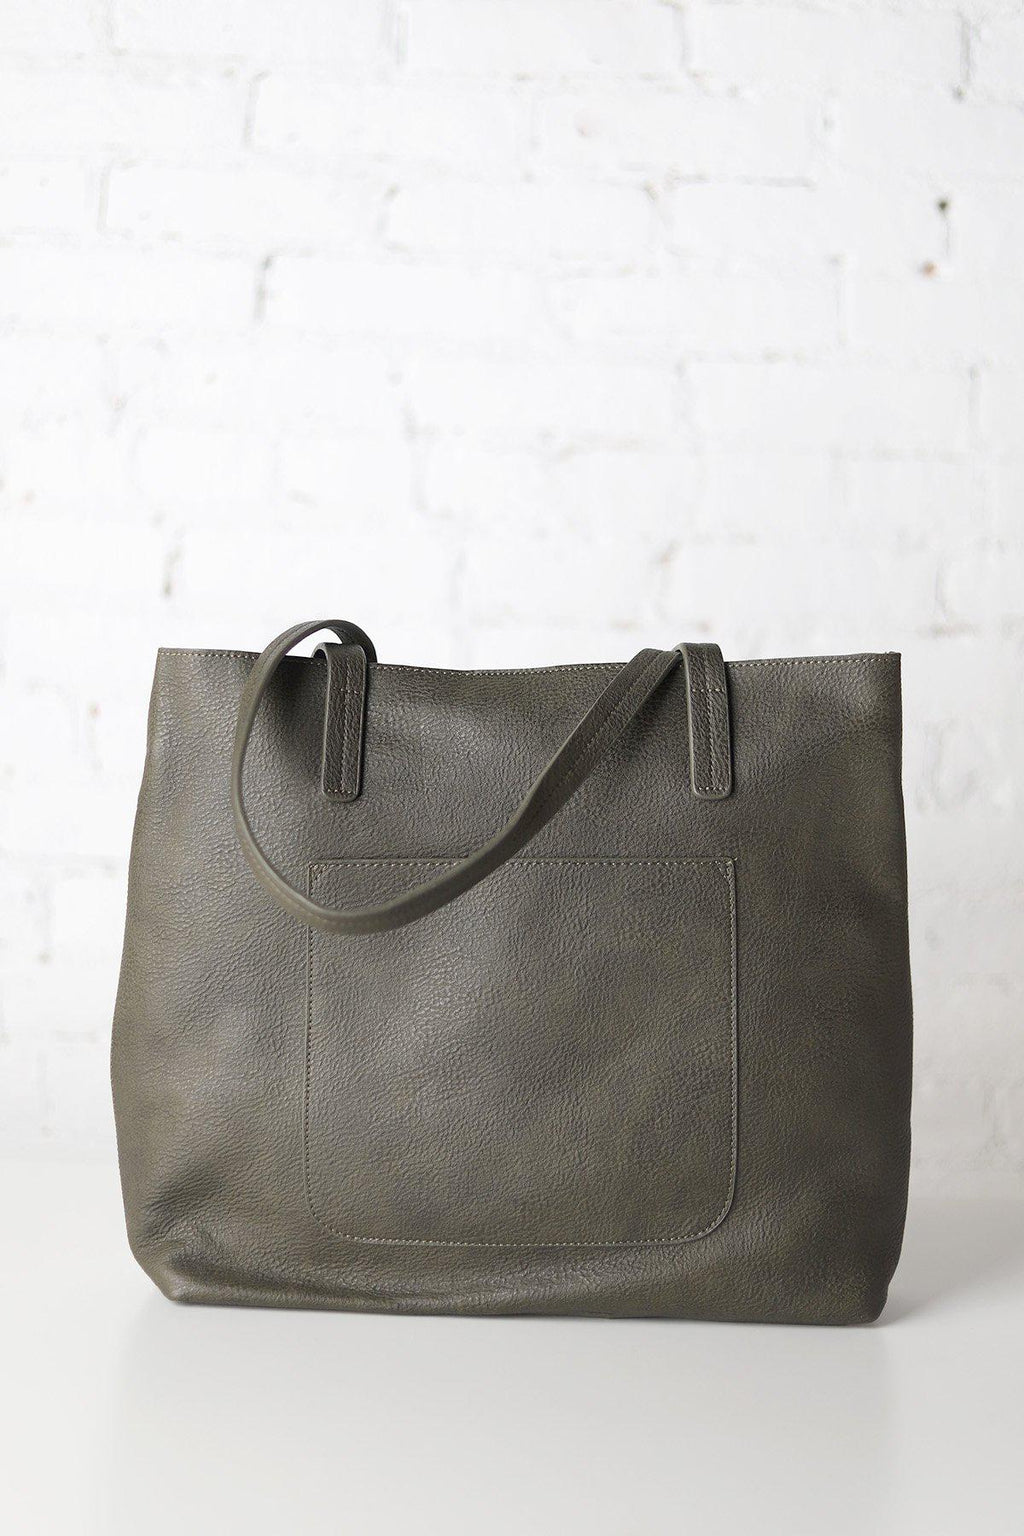 Megan Olive Carry All Tote